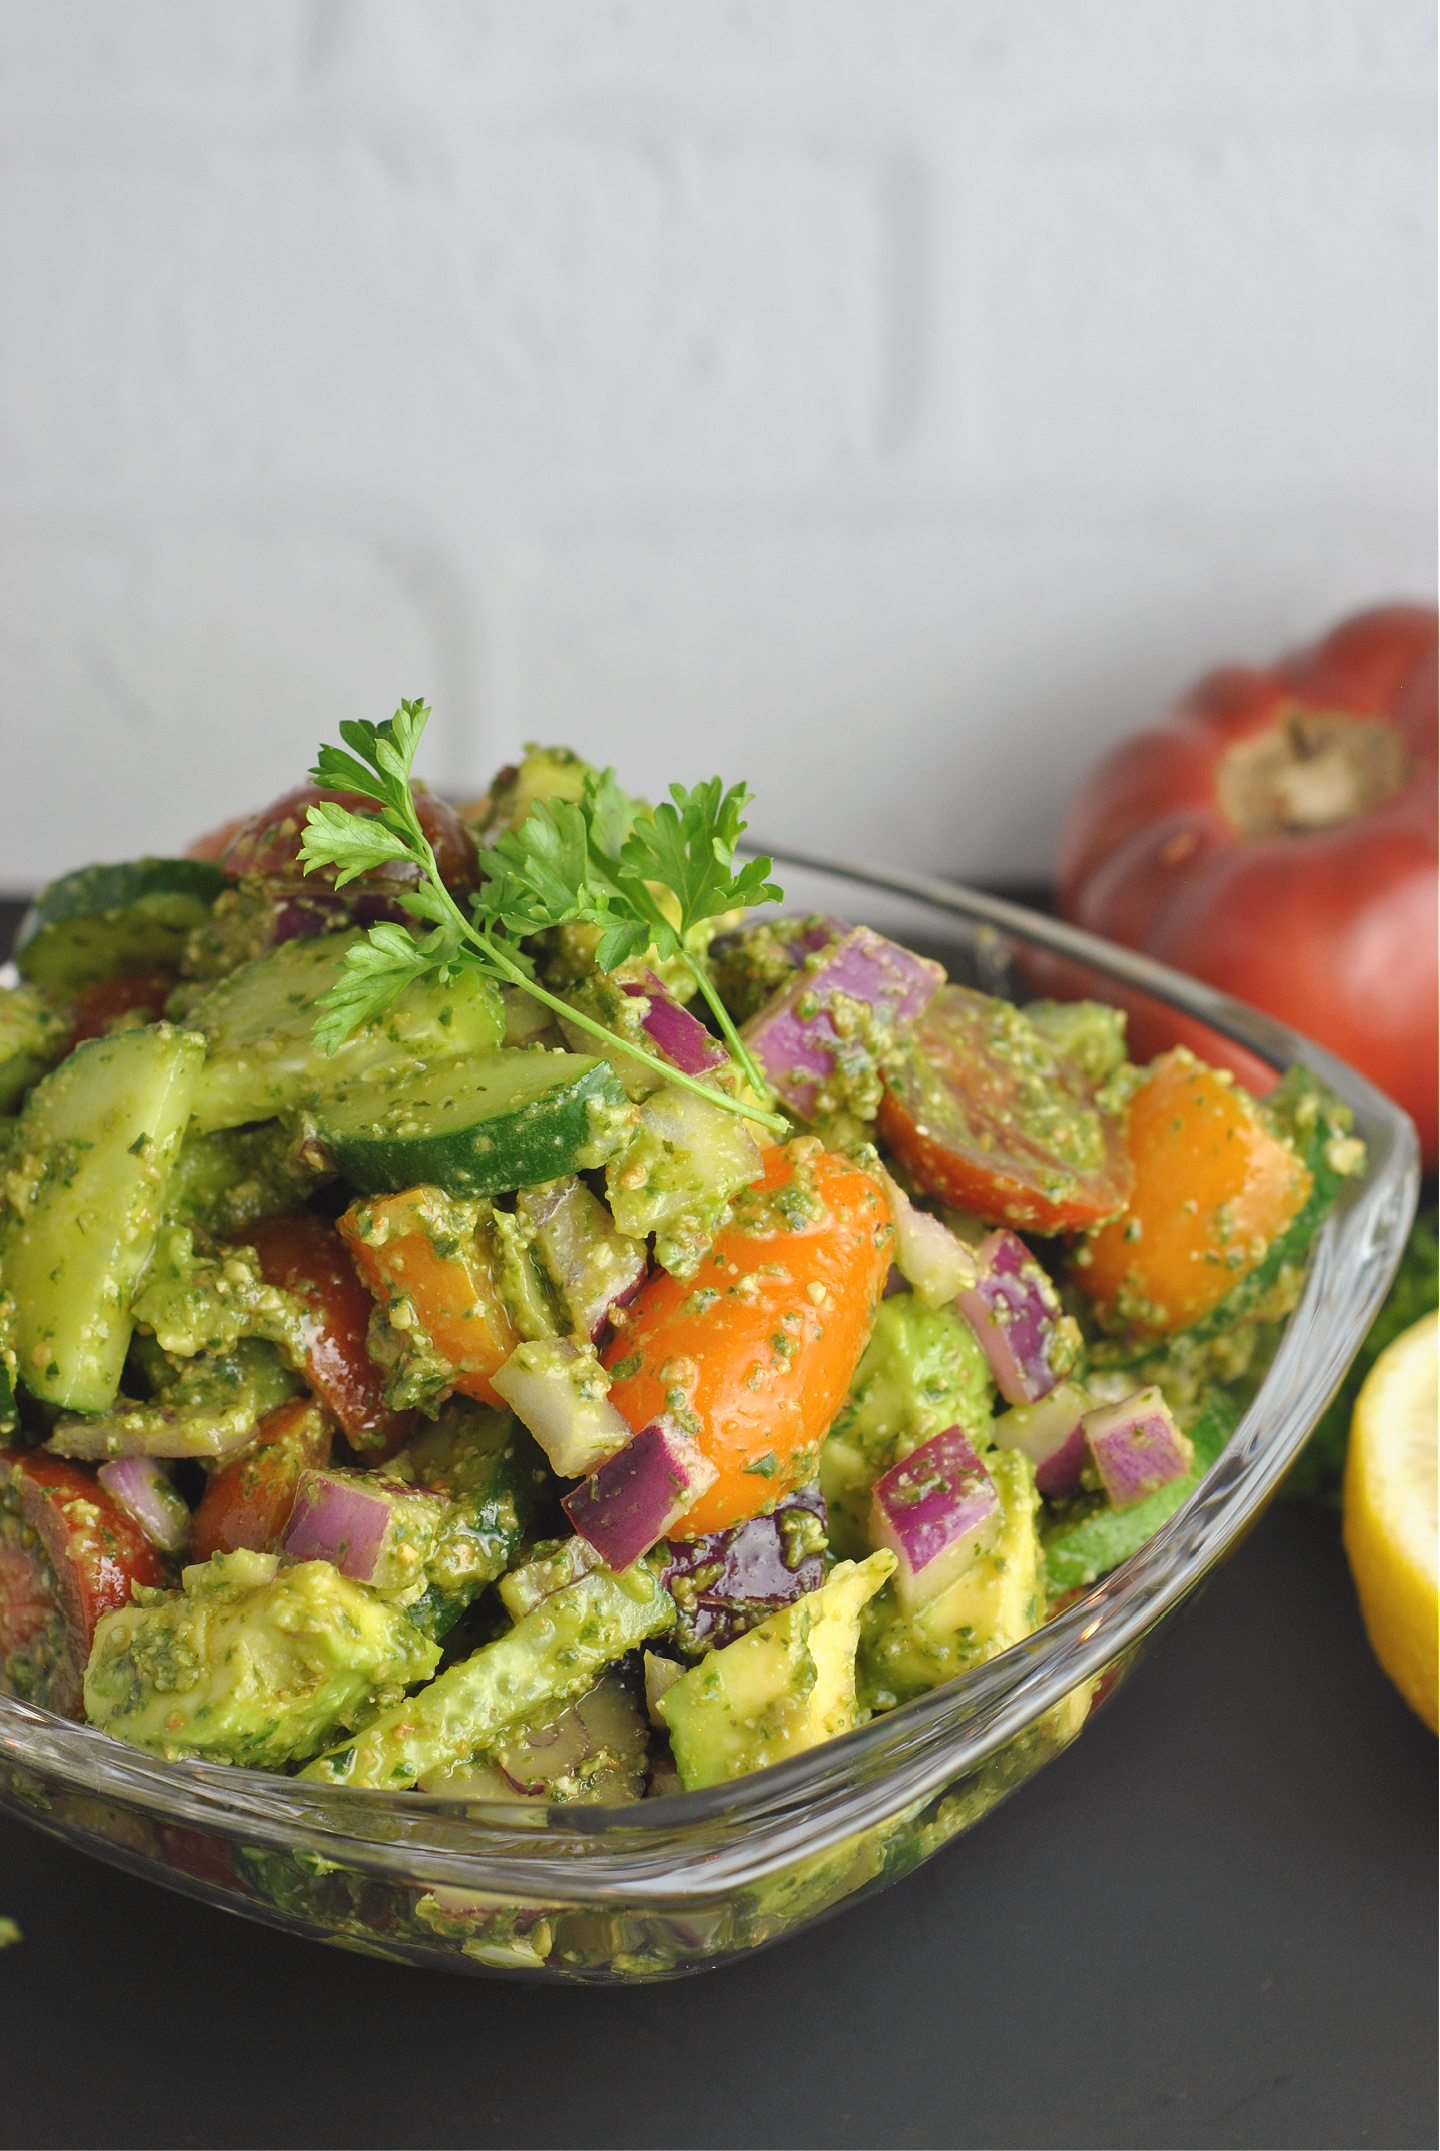 Tomato Cucumber Avocado Salad with Basil Pesto via @preventionrd